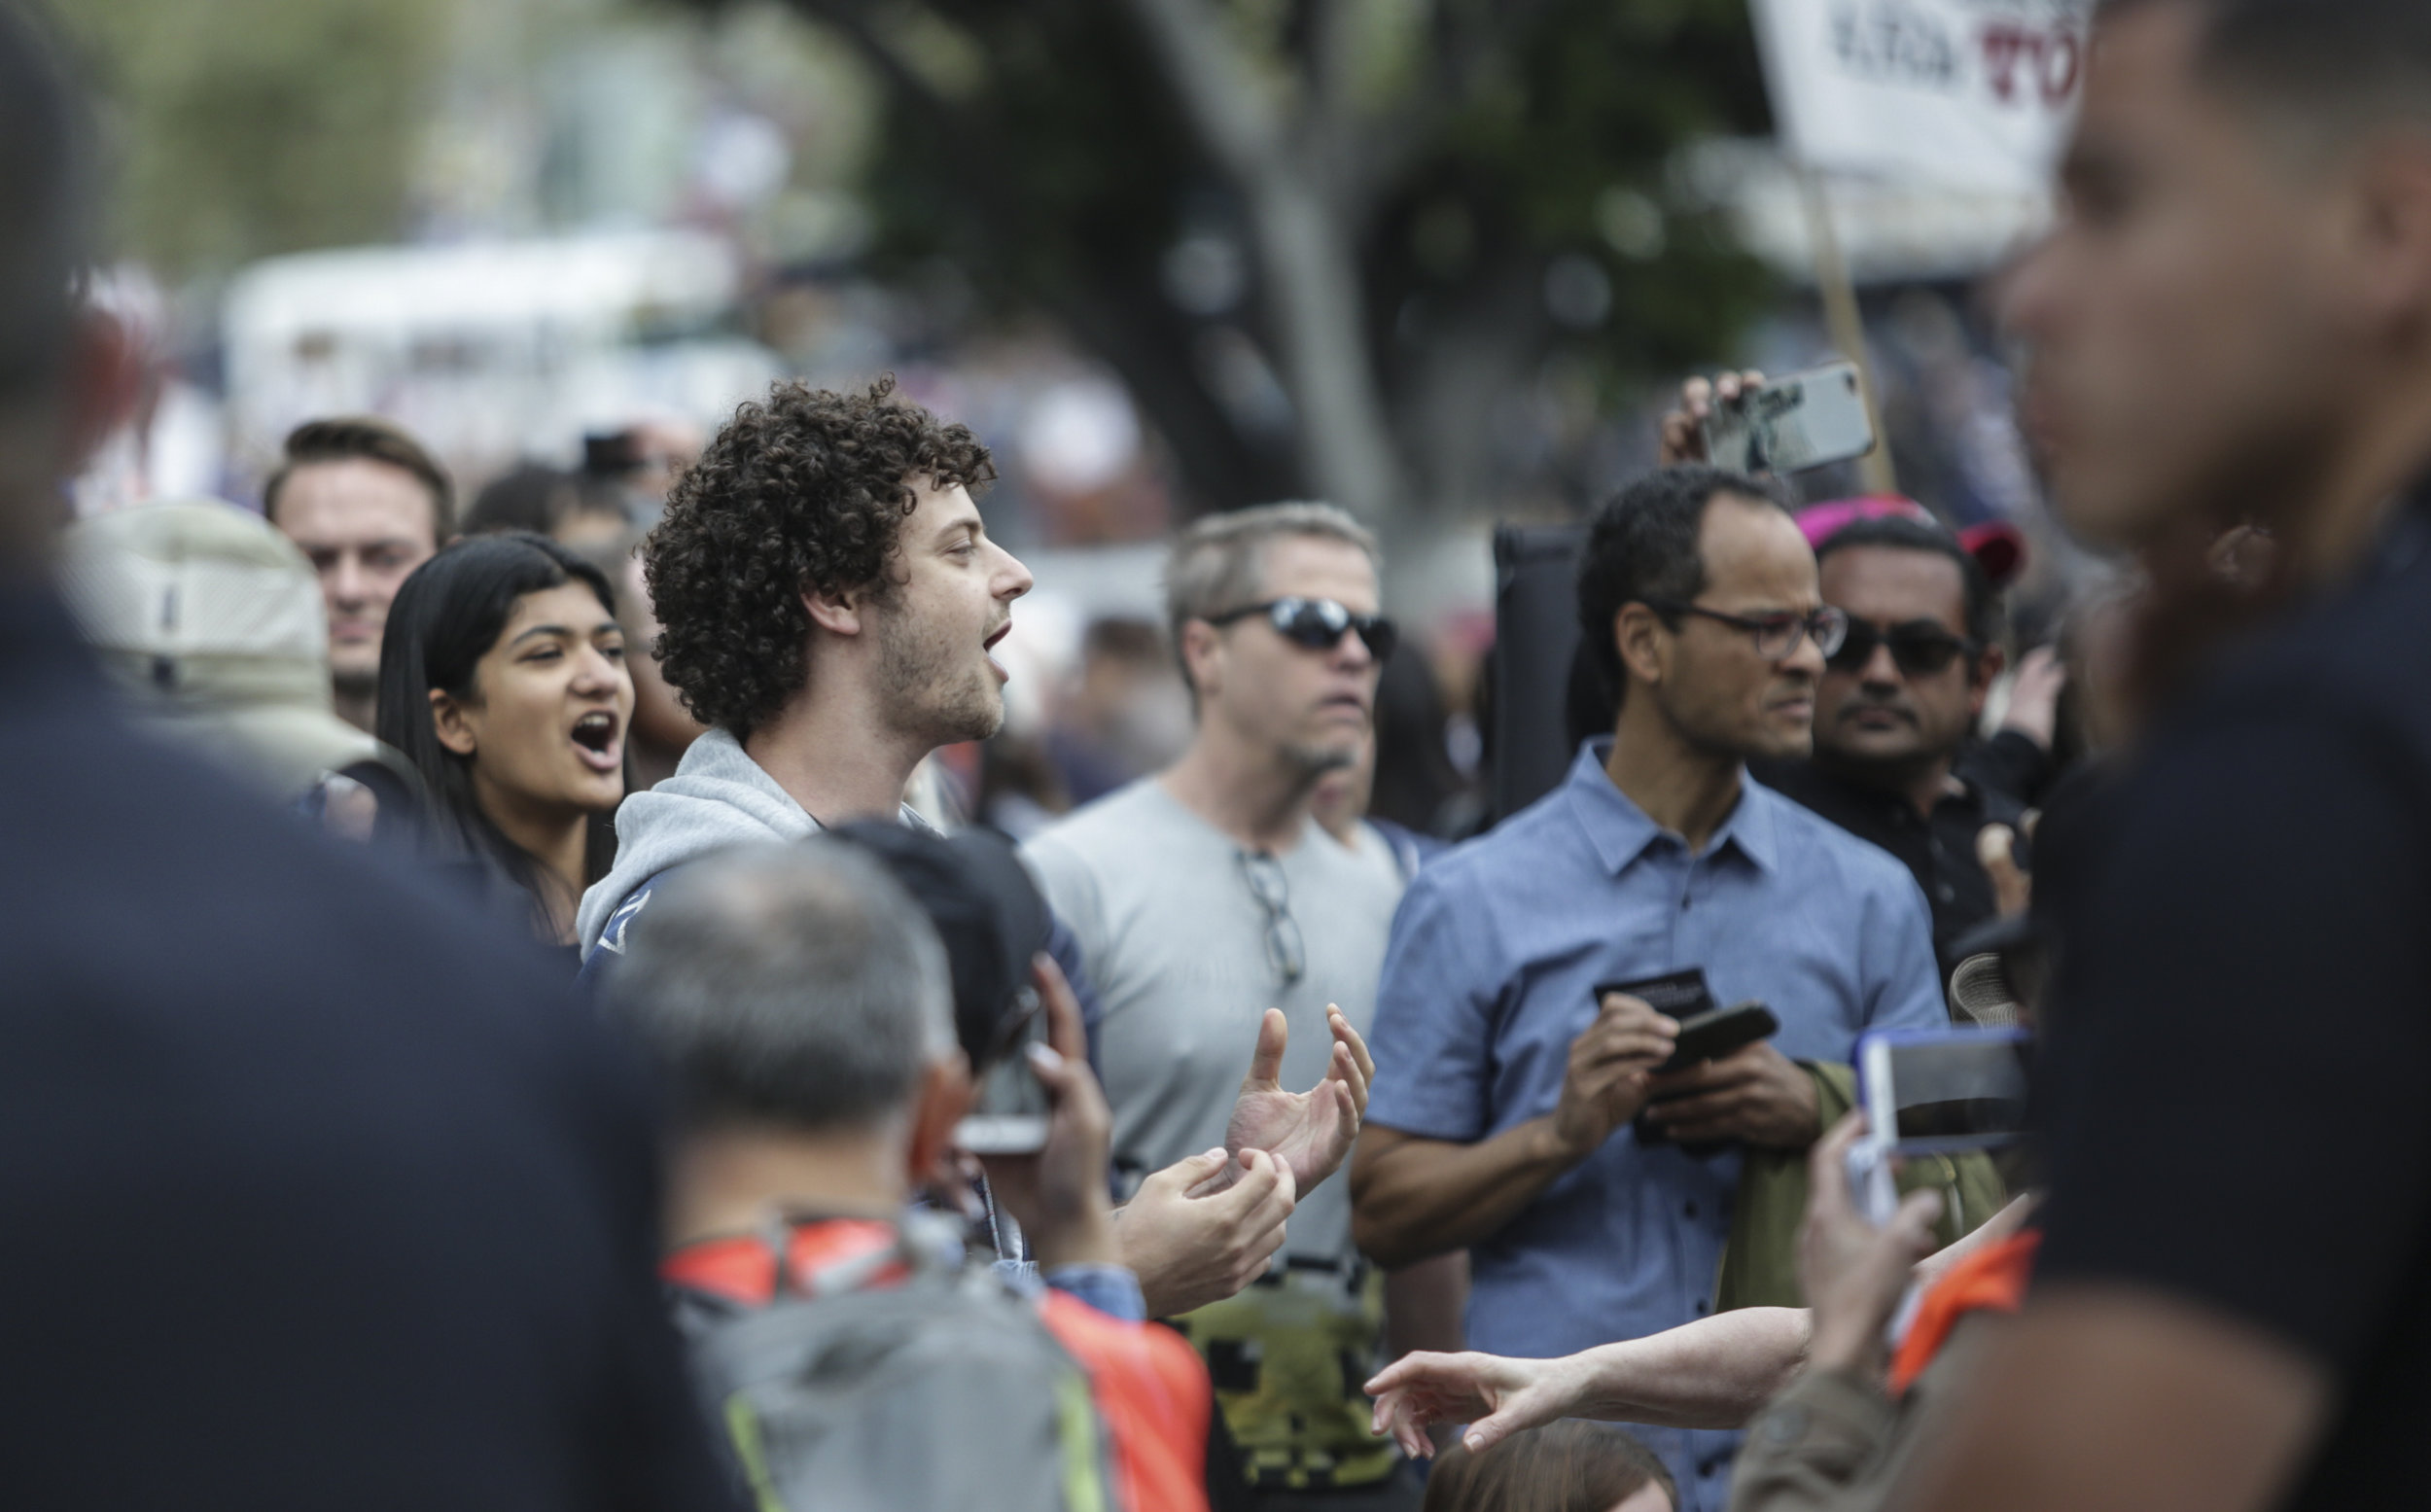 Protesters and counter-protesters clash across police lines at the March for Life. The march took place between Pershing Square and City Hall in Downtown Los Angeles, California. Tensions were high while debating gun control and solutions to gun violence. The march took place Saturday, March 24, 2018. (William Wendelman/Corsair Photo)